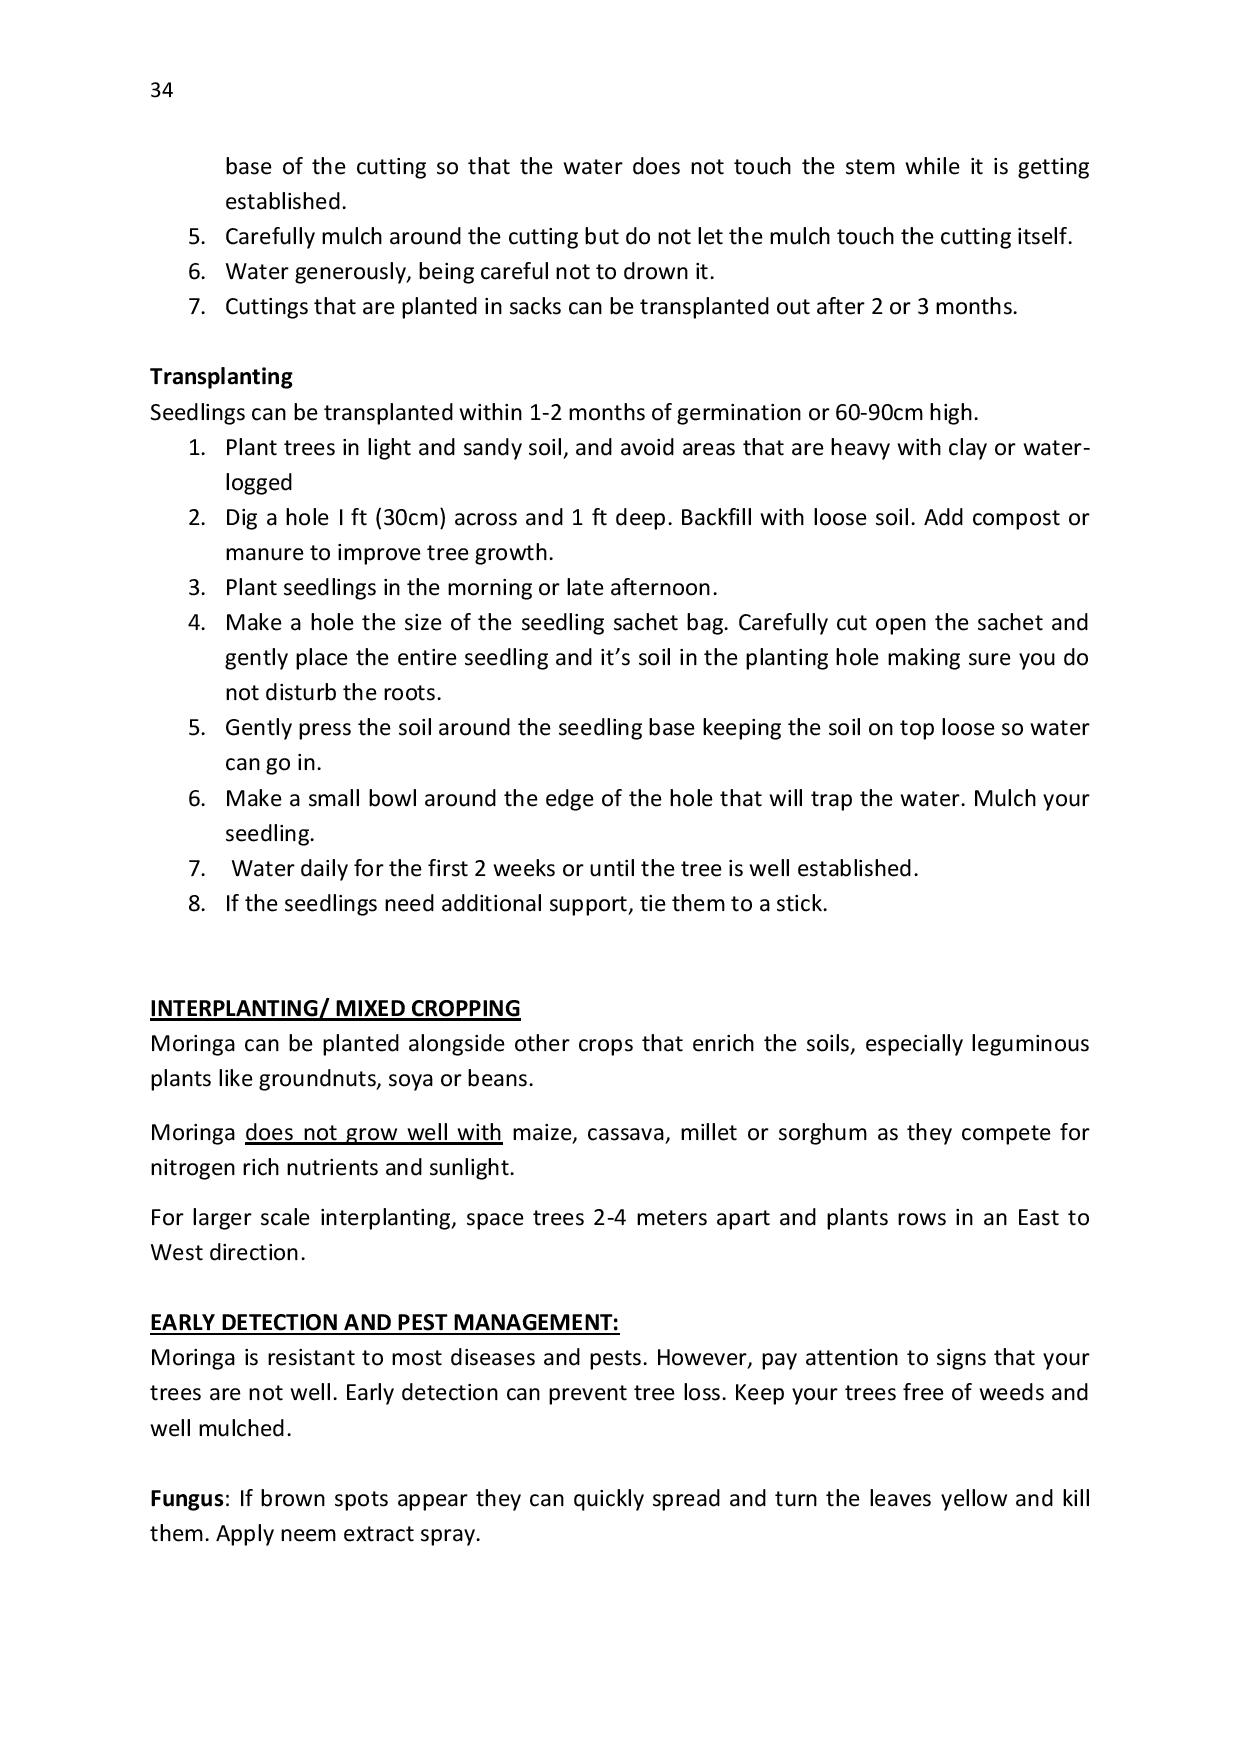 gen-ghana-youth-p-l-a-n-t-moringa-school-garden-manual-page-034